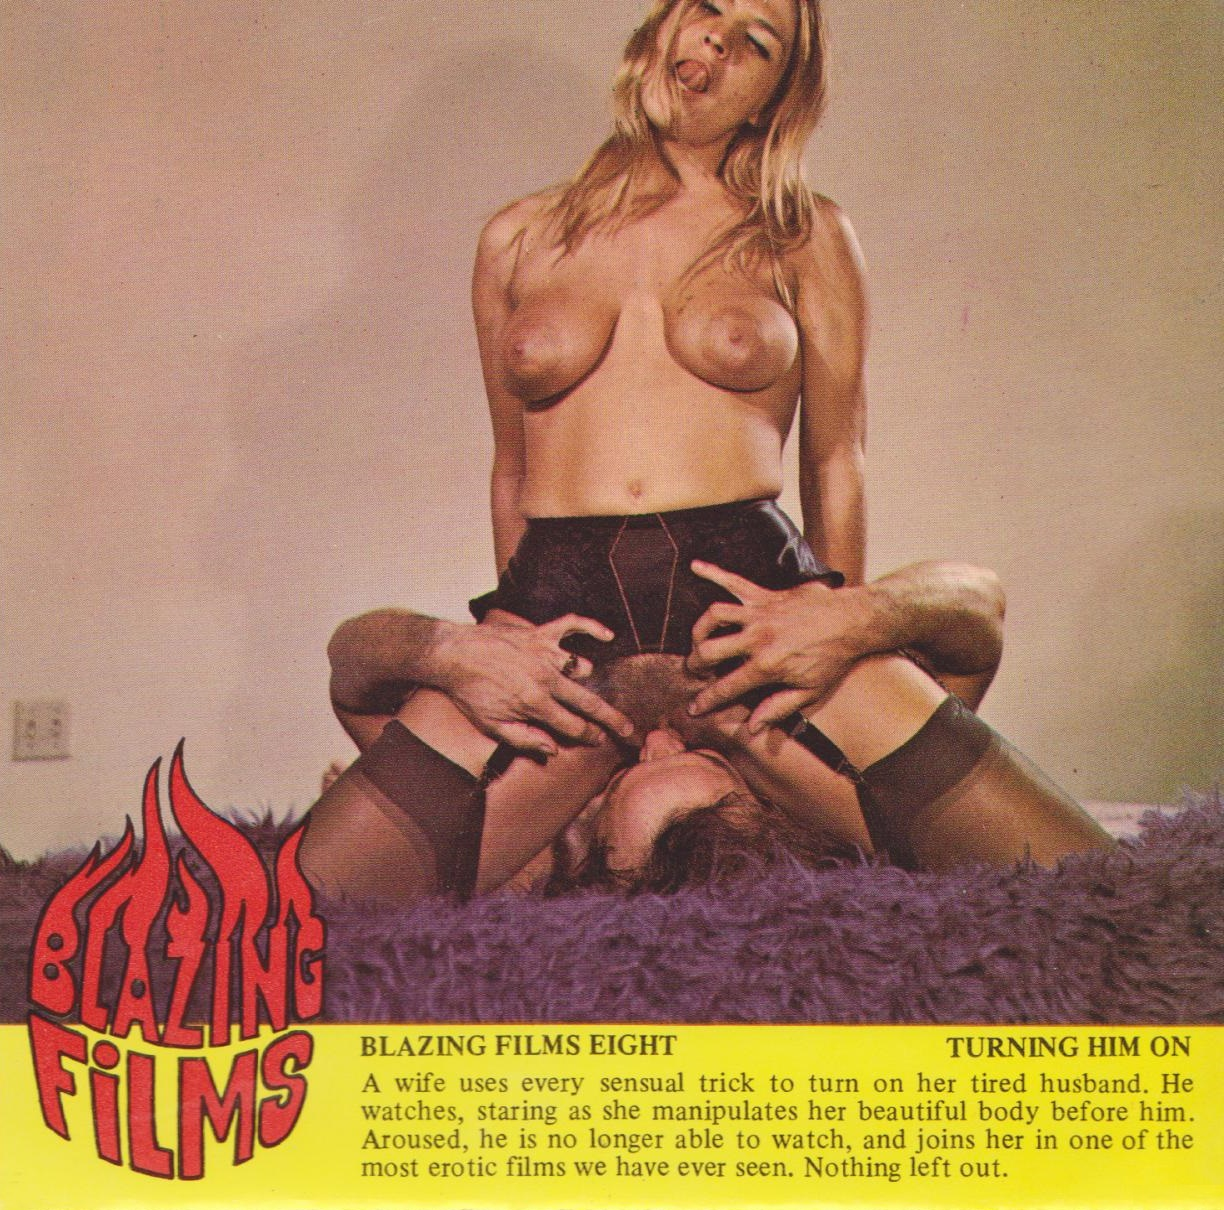 Blazing Films 8 - Turning Him On